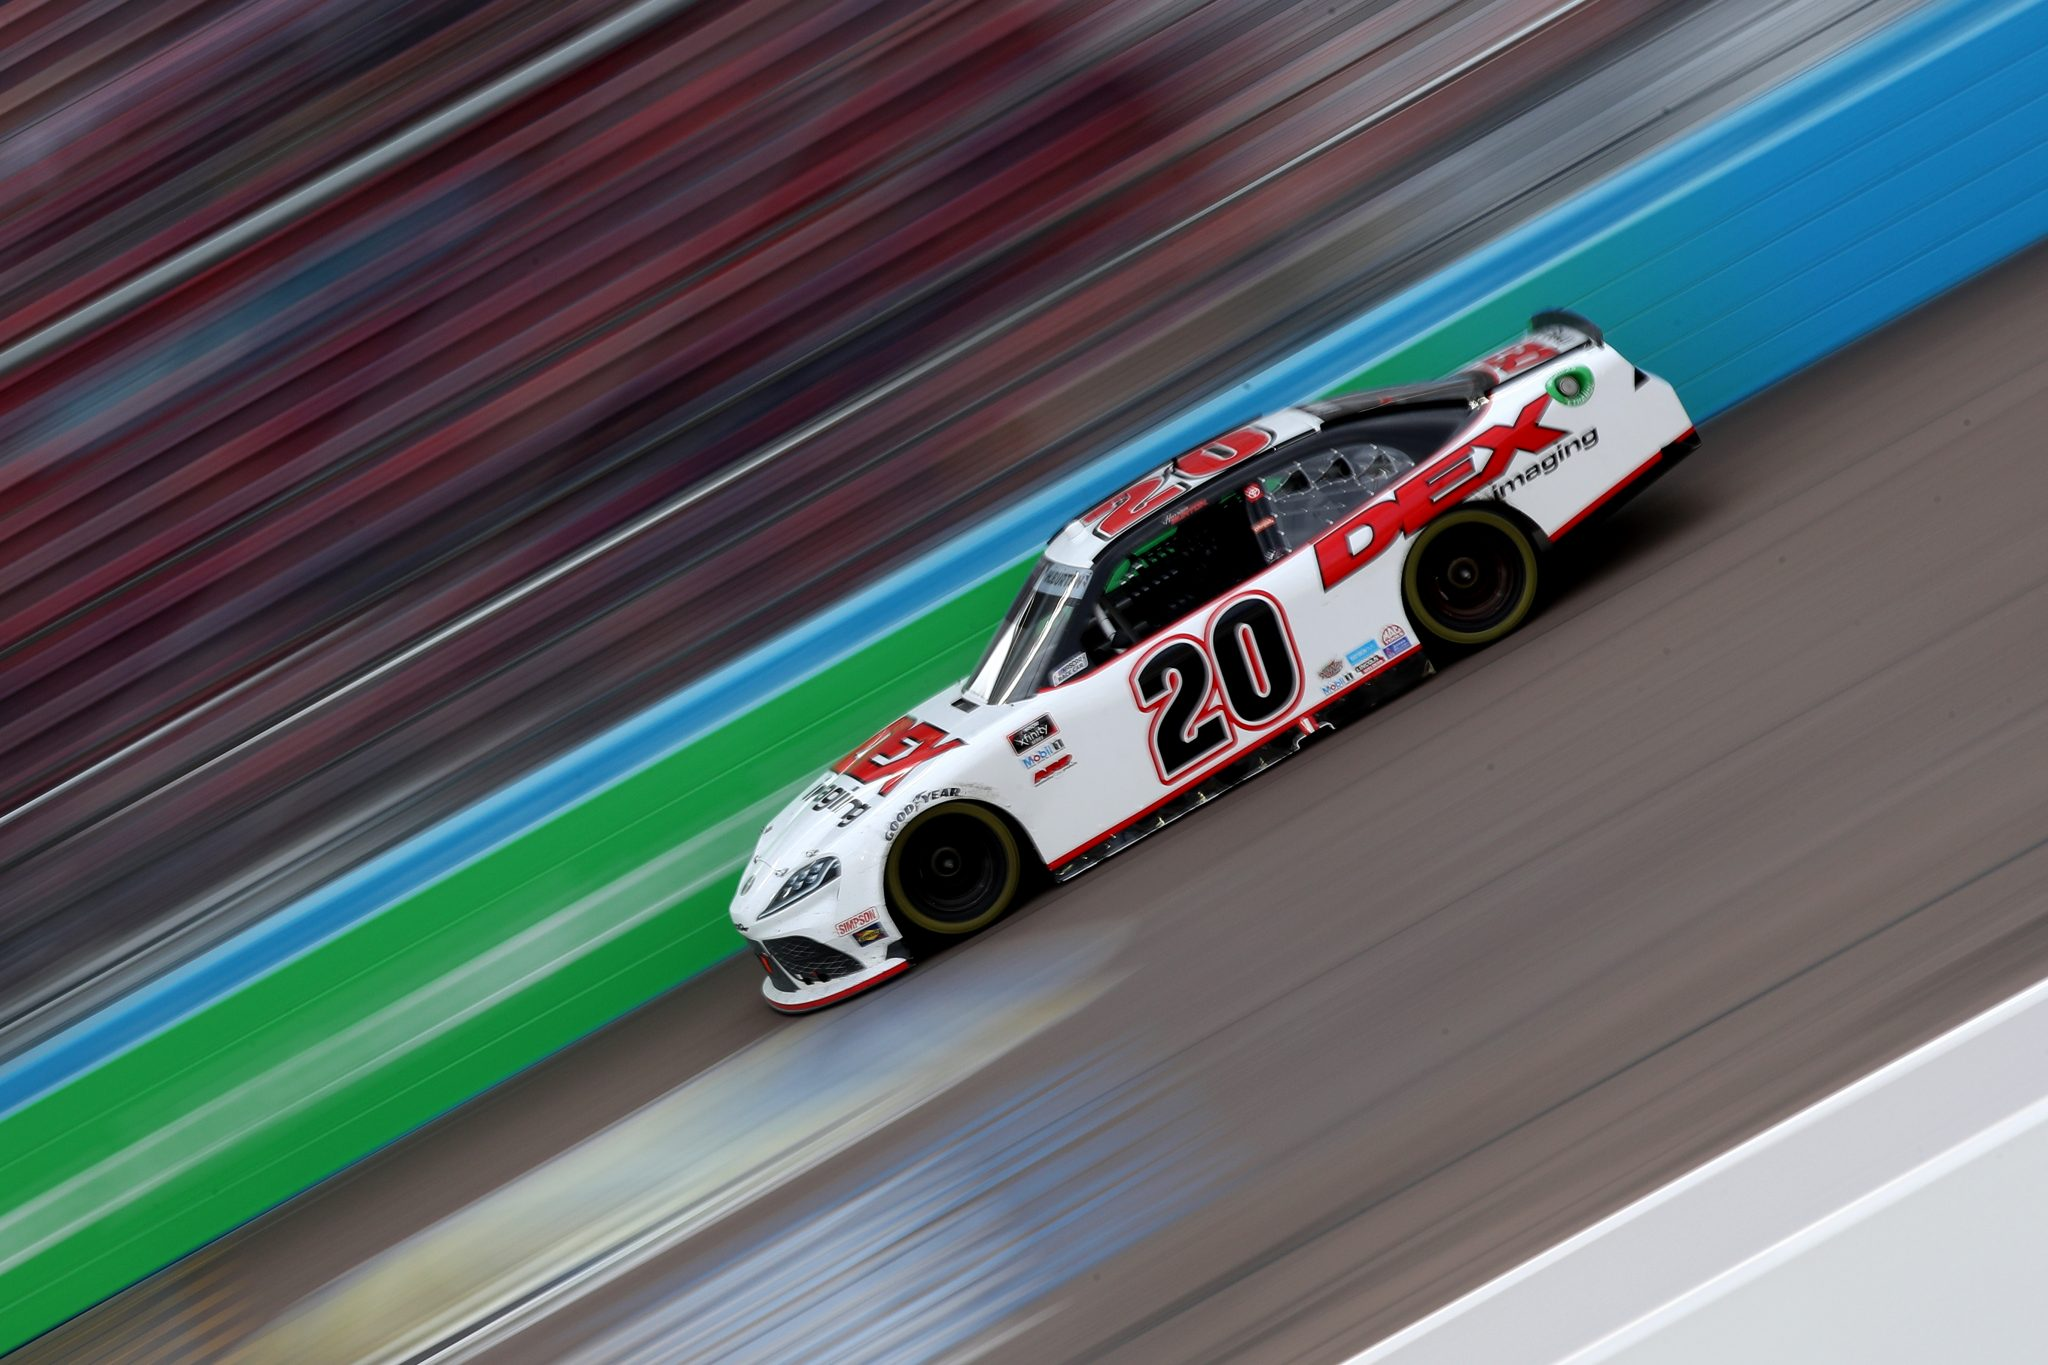 AVONDALE, ARIZONA - MARCH 13: Harrison Burton, driver of the #20 DEX Imaging Toyota, drives during the NASCAR Xfinity Series Call 811 Before You Dig 200 presented by Arizona 811 at Phoenix Raceway on March 13, 2021 in Avondale, Arizona. (Photo by Sean Gardner/Getty Images) | Getty Images